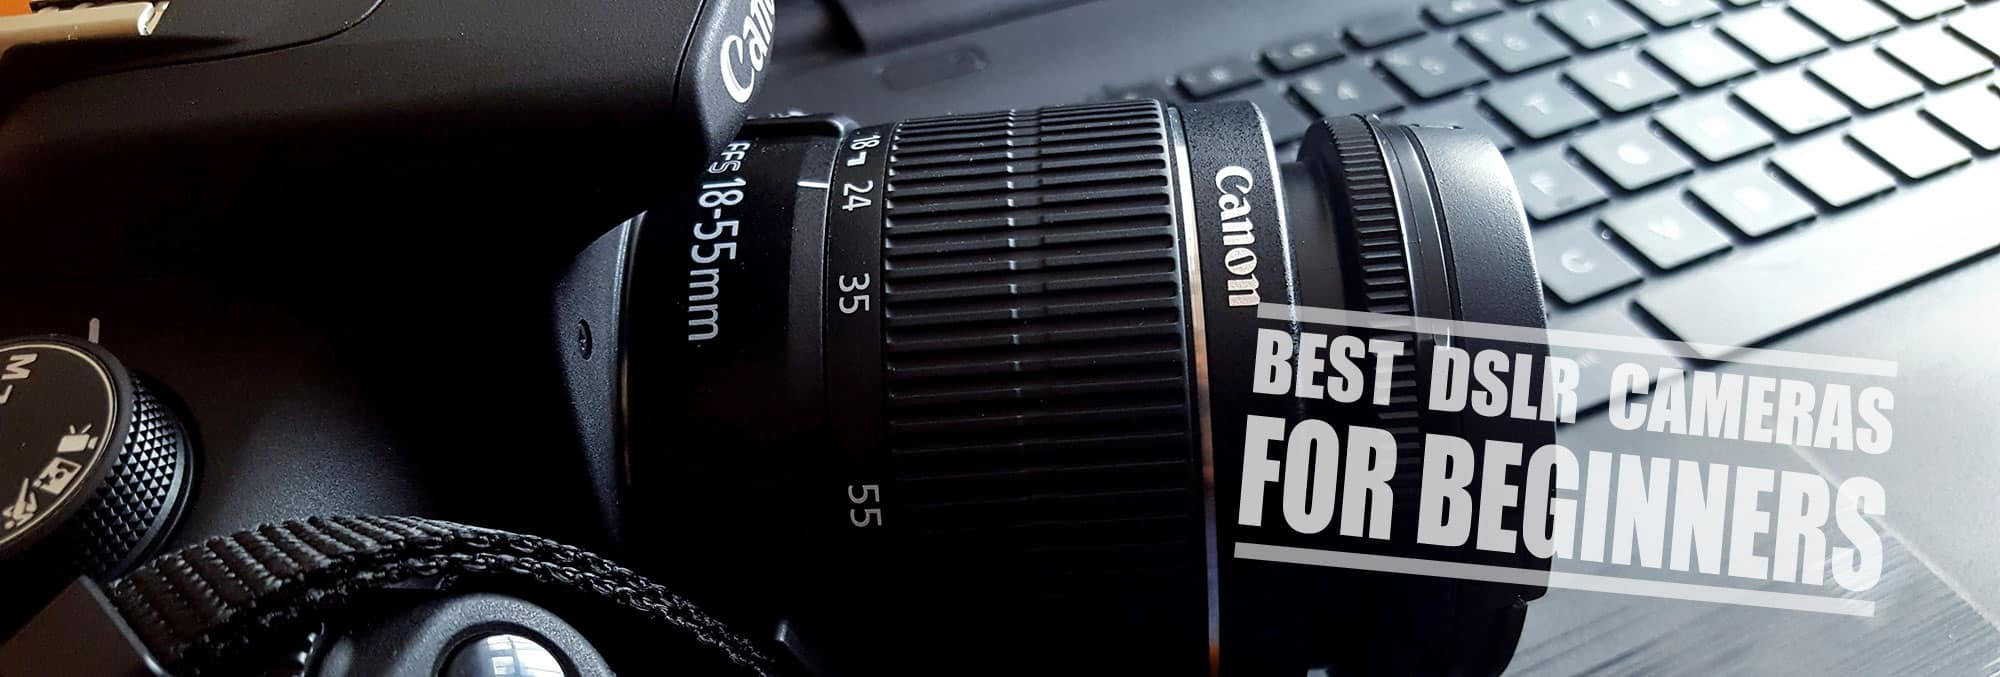 What is The Best DSLR Camera for Beginners? Reviews and Guide